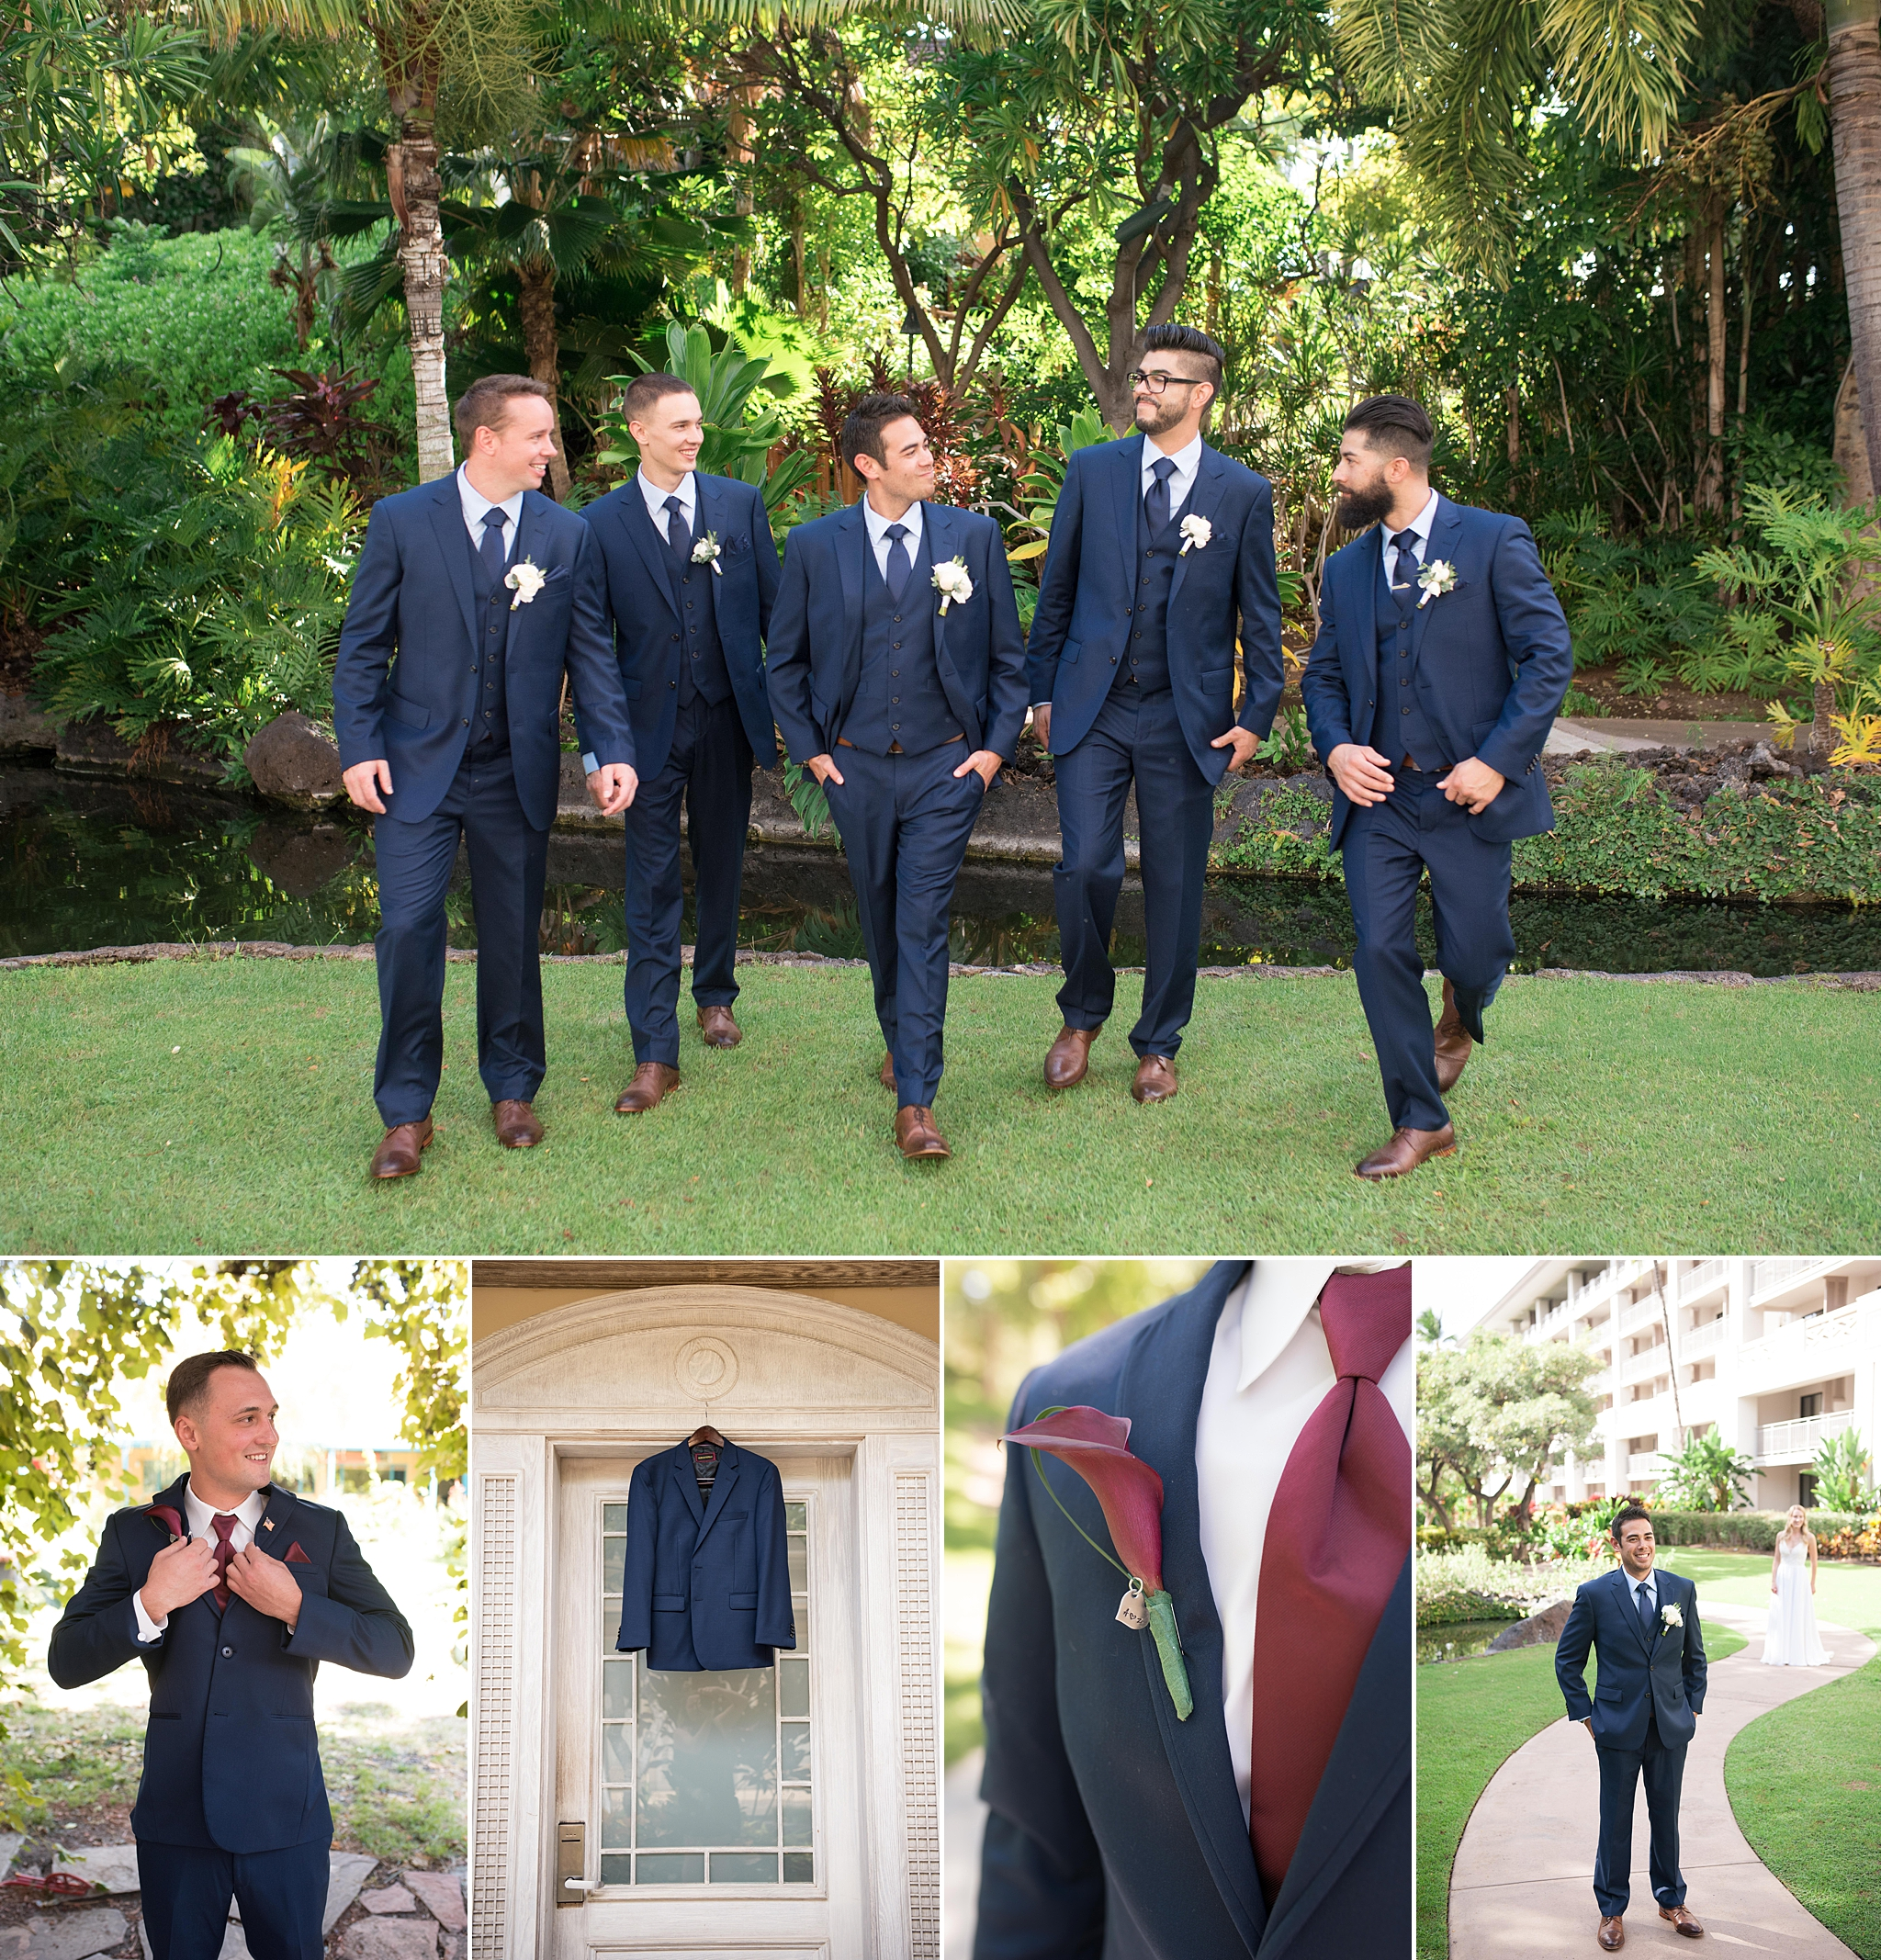 Men wear stylish suits on their wedding day from Suits Unlimited, located in Albuquerque, New Mexico. Trendy, luxe, and timeless mens attire in blue suits in Albuquerque New Mexico for rooftop wedding at Hotel Parq Central, and in Kona, Hawaii at Fairmont Orchid.